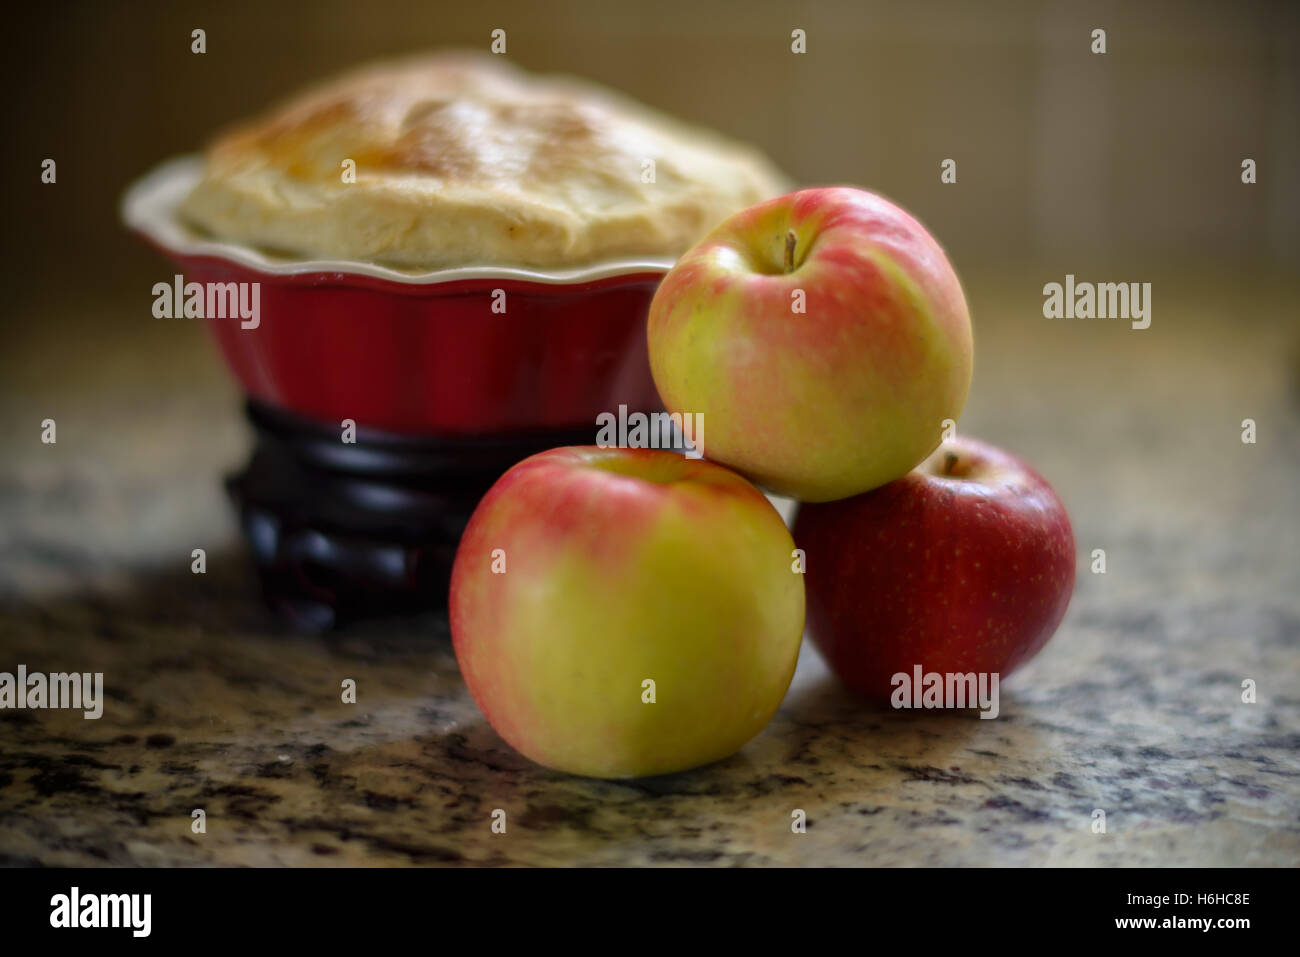 Apples with a apple pie on a kitchen counter. - Stock Image